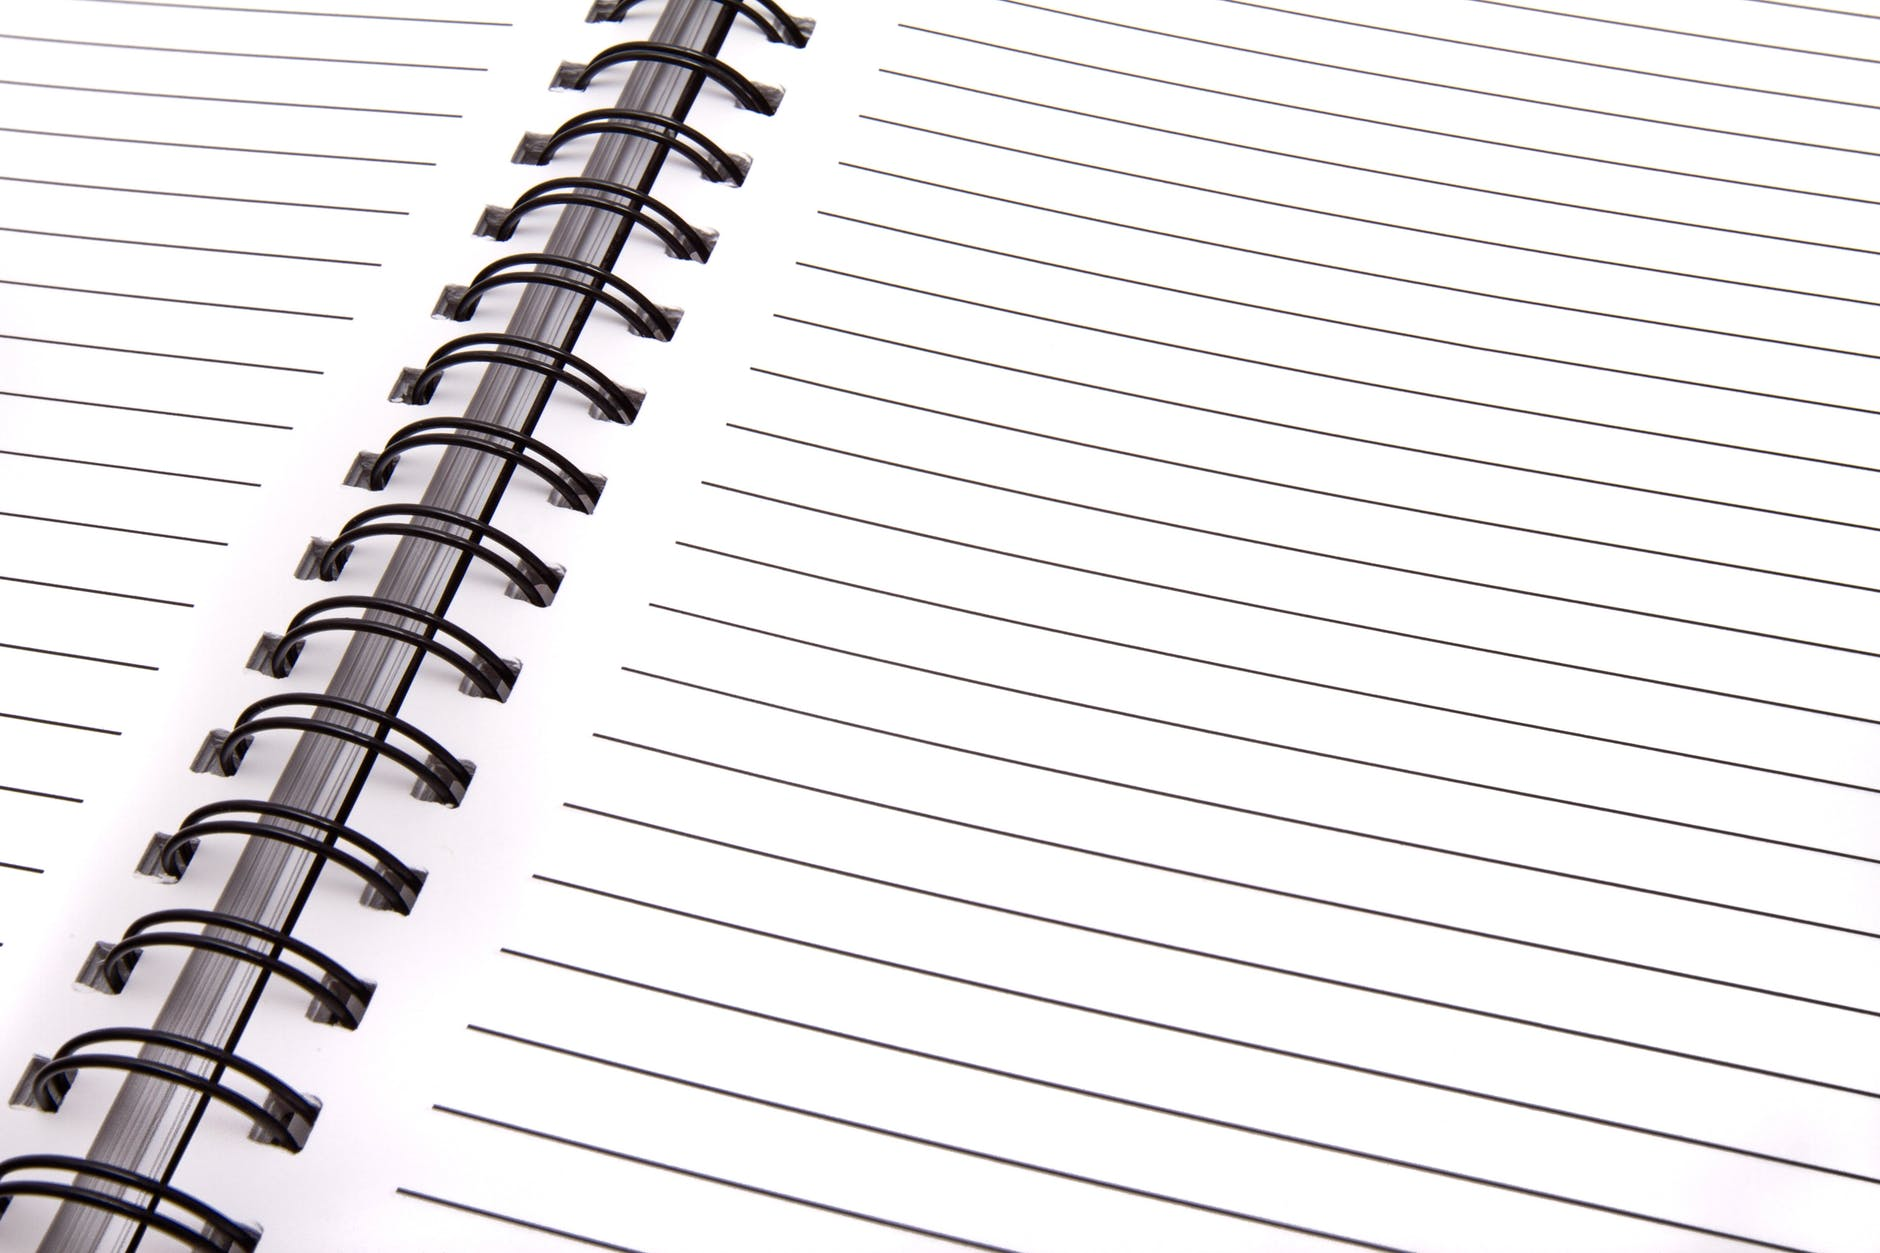 blank blank page business data